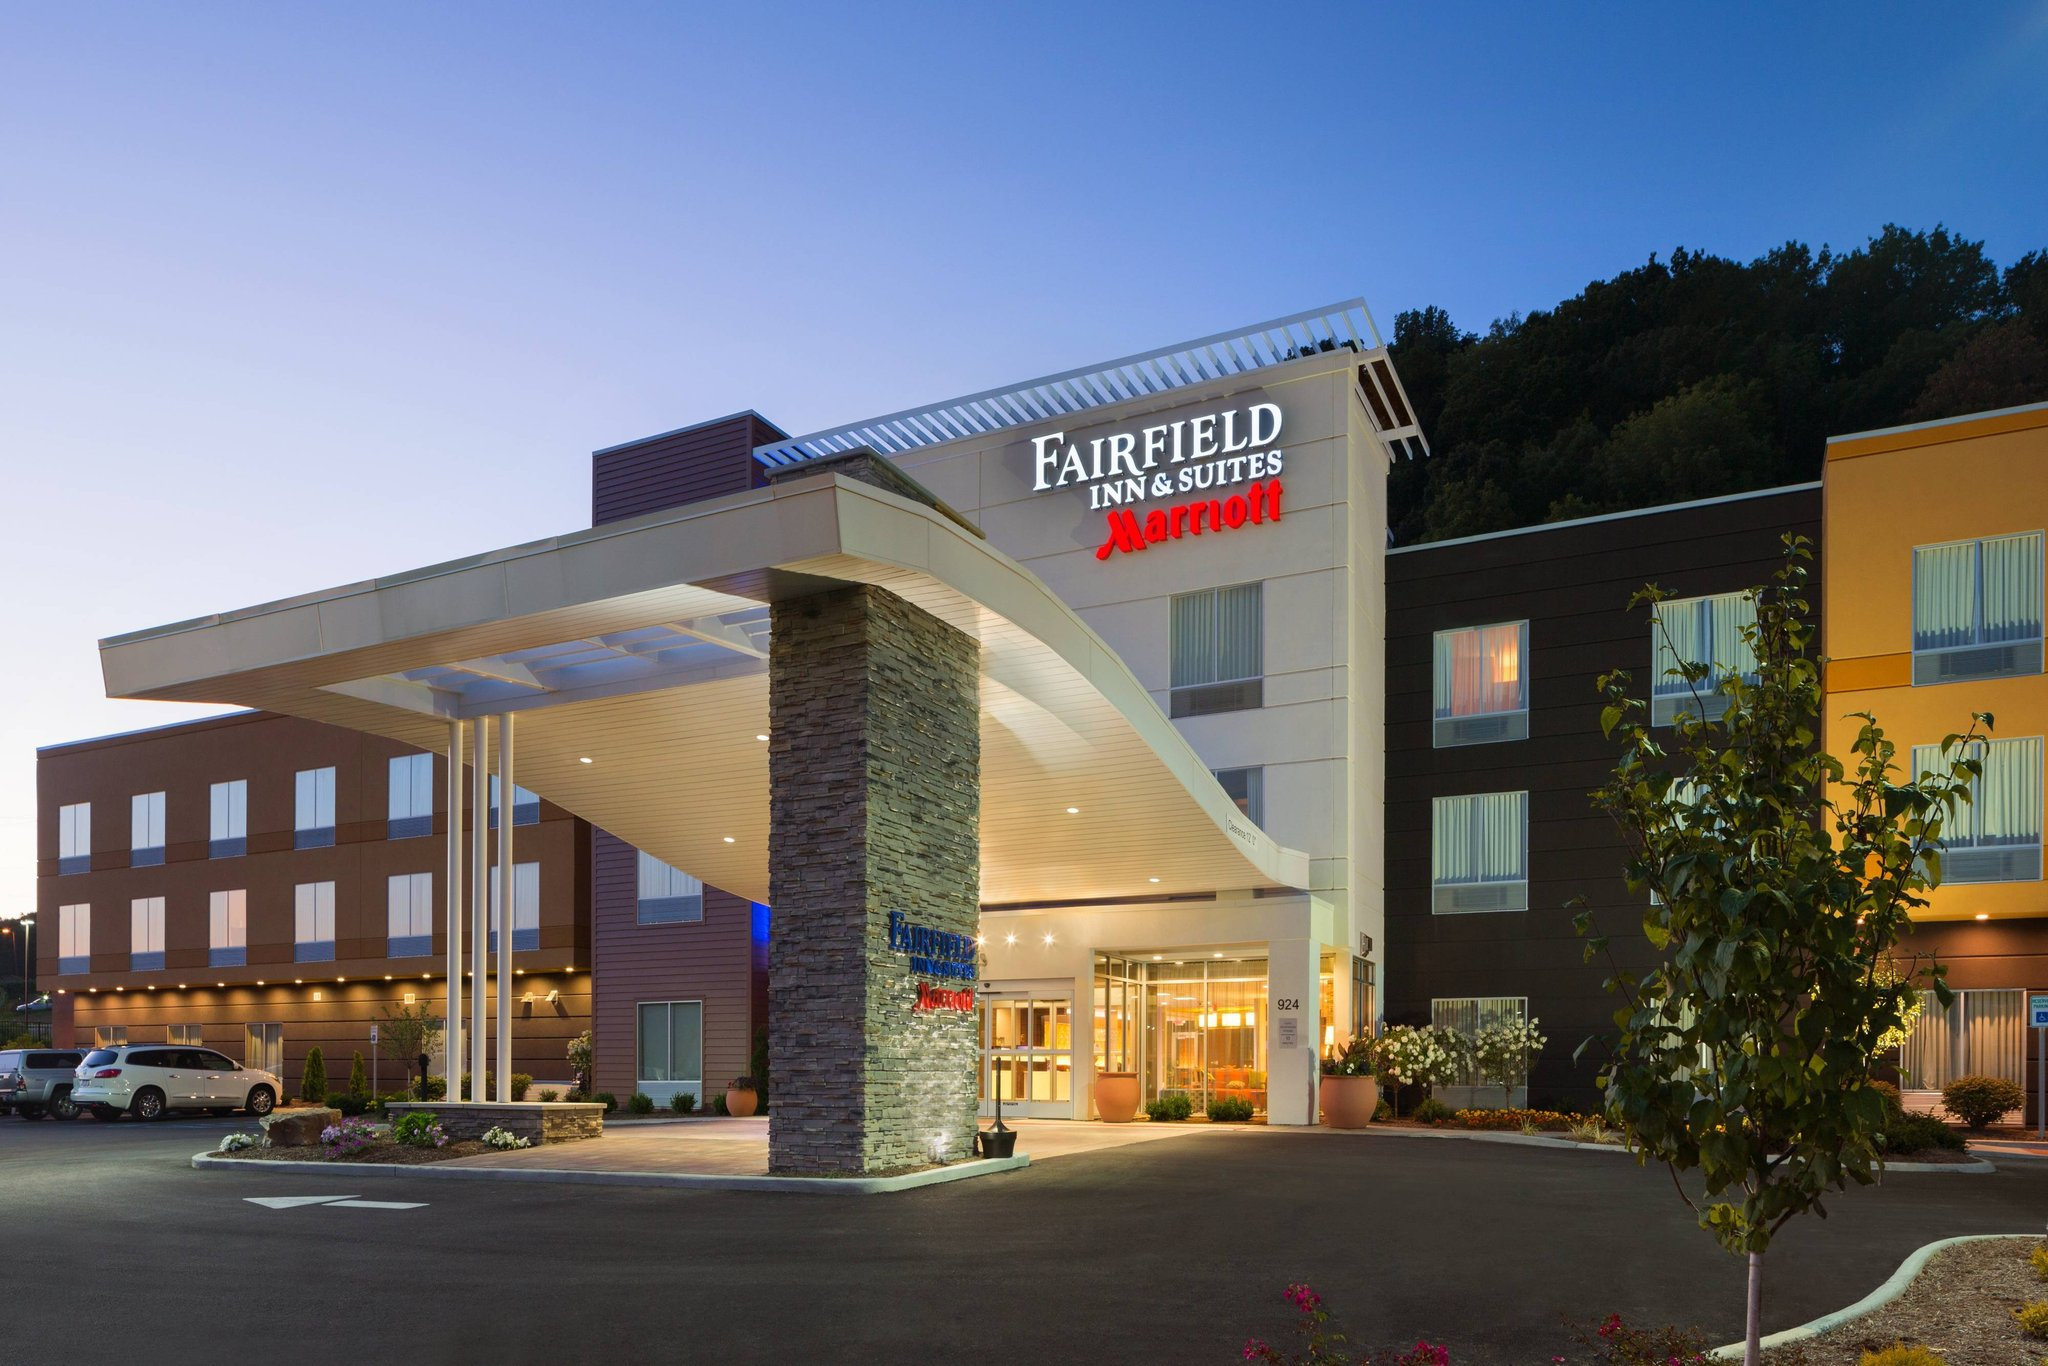 Fairfield Inn and Suites by Marriott Athens